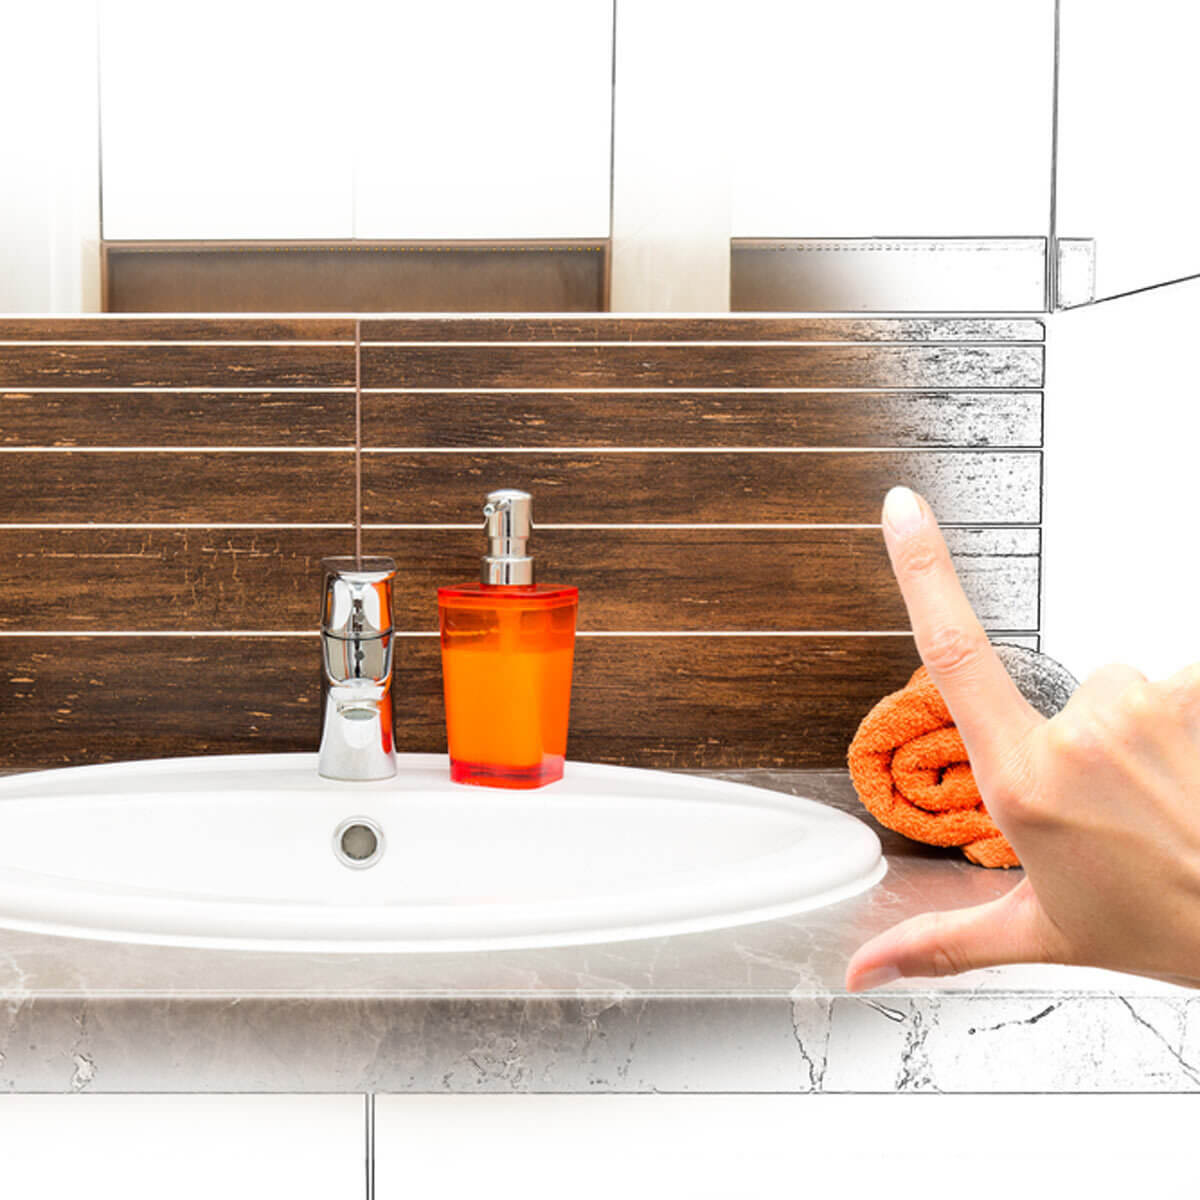 Bathroom sink with an orange towel and soap dispenser. A woman's fingers are framing it out.